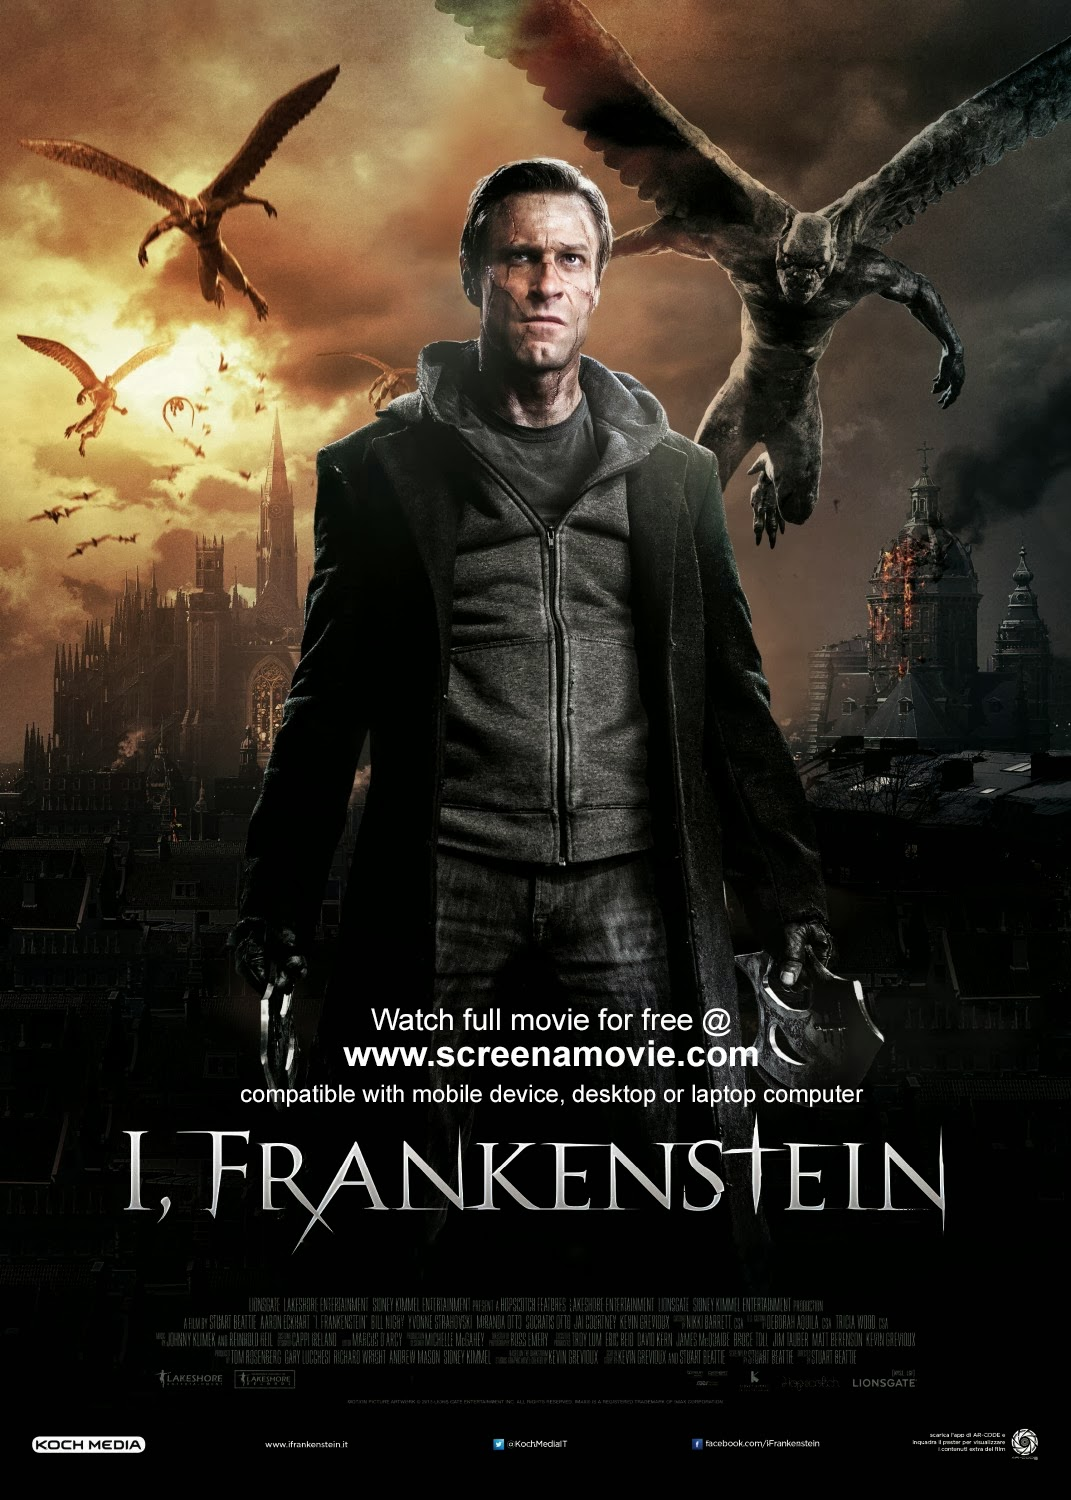 I, Frankenstein_@screenamovie